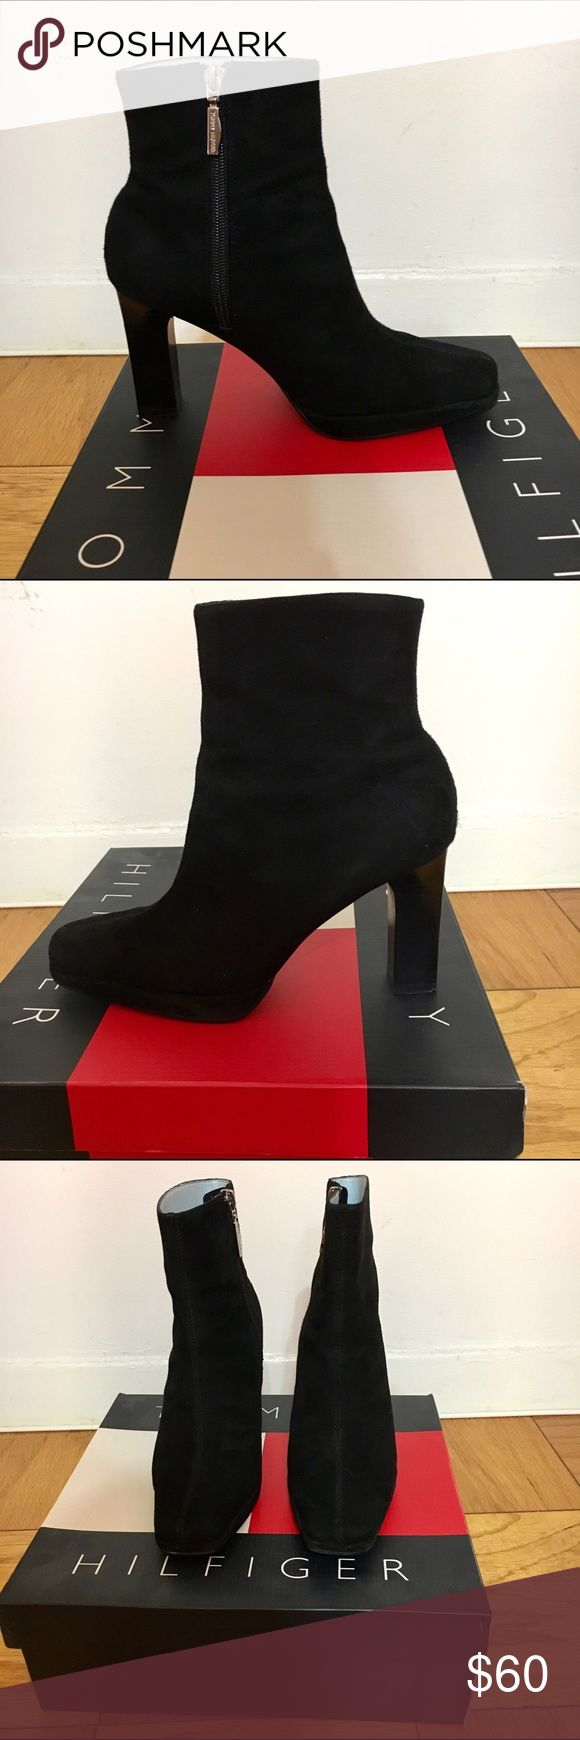 "Tommy Hilfiger black suede boots Sleek black suede Tommy Hilfiger boots. 3.5"" heels, worn once. They come with the box!  offers welcome! Tommy Hilfiger Shoes Heeled Boots"